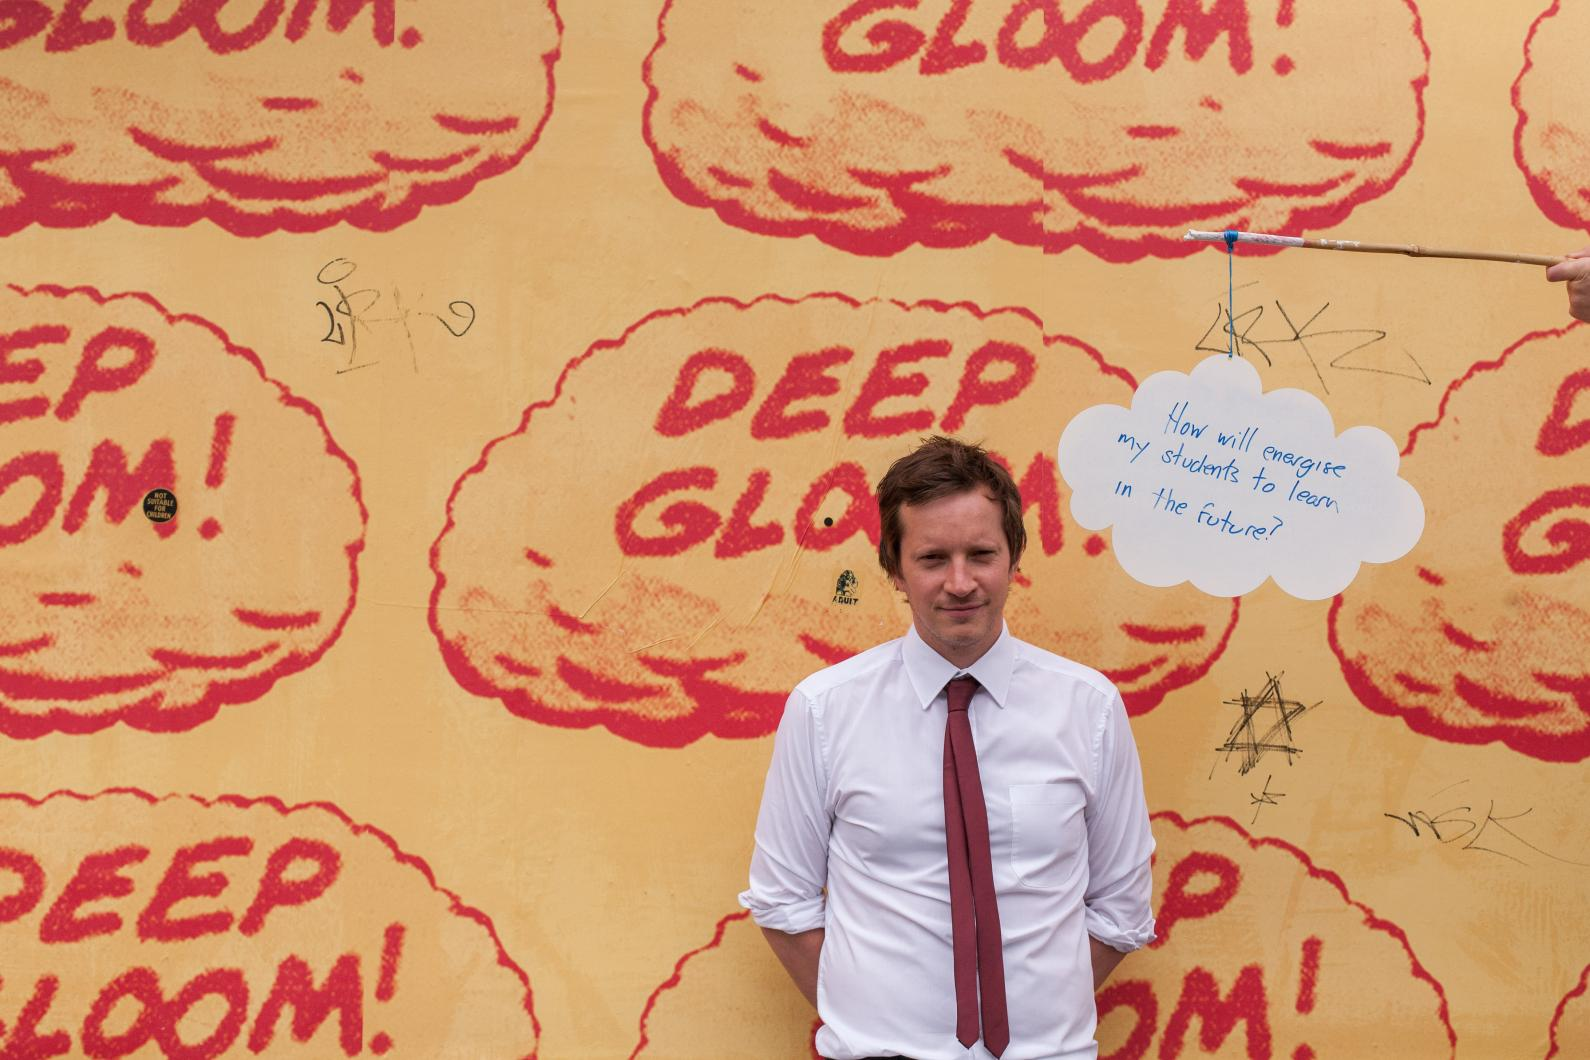 How will I energise my students to learn in the future? Sam Booth's Photobooth contribution. Photo: Tim Mitchell